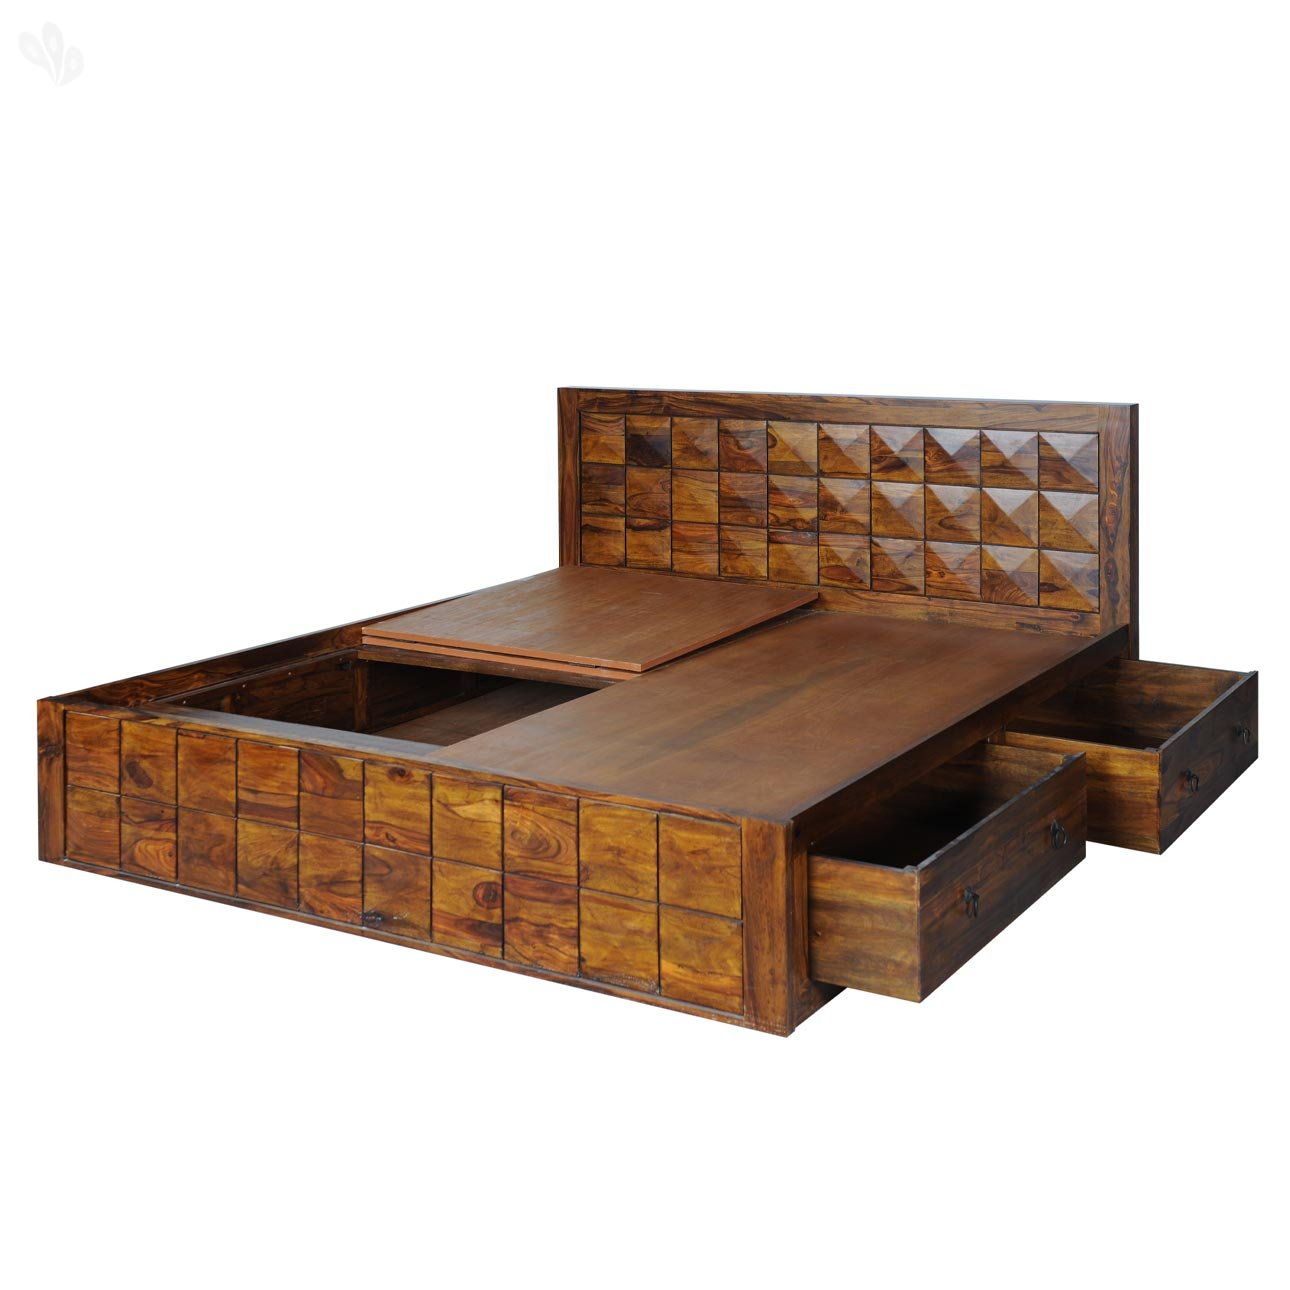 Beautiful Royal Oak Sapphire King Size Bed With Storage (Natural): Amazon.in: Home U0026  Kitchen